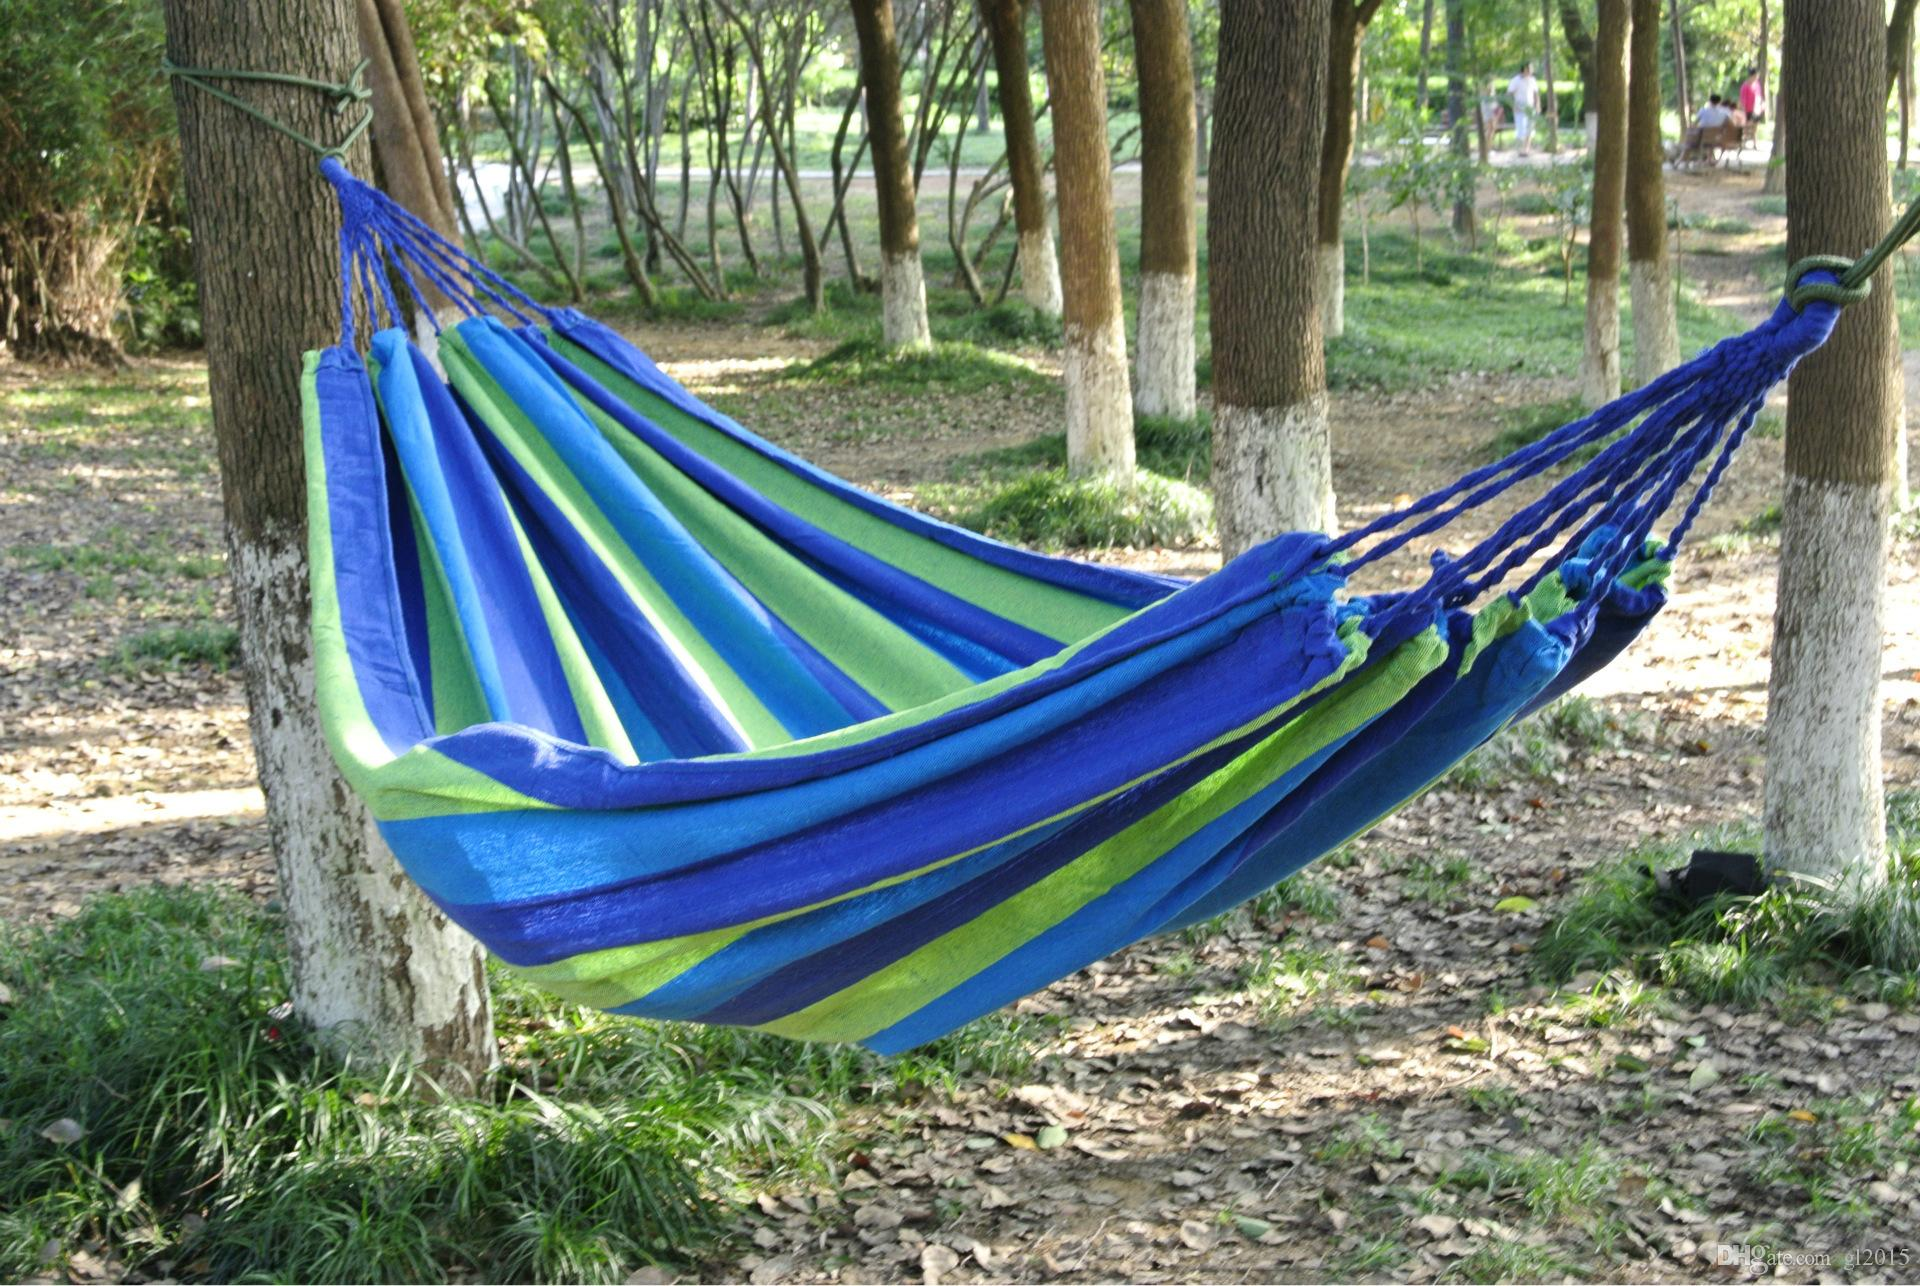 2018 Fedex Or Ups Hammock High Quality Portable Outdoor Garden Hammock Hang  Bed Travel Camping Swing Canvas Stripe Nvie Double Person Hammock From  Gl2015, ...